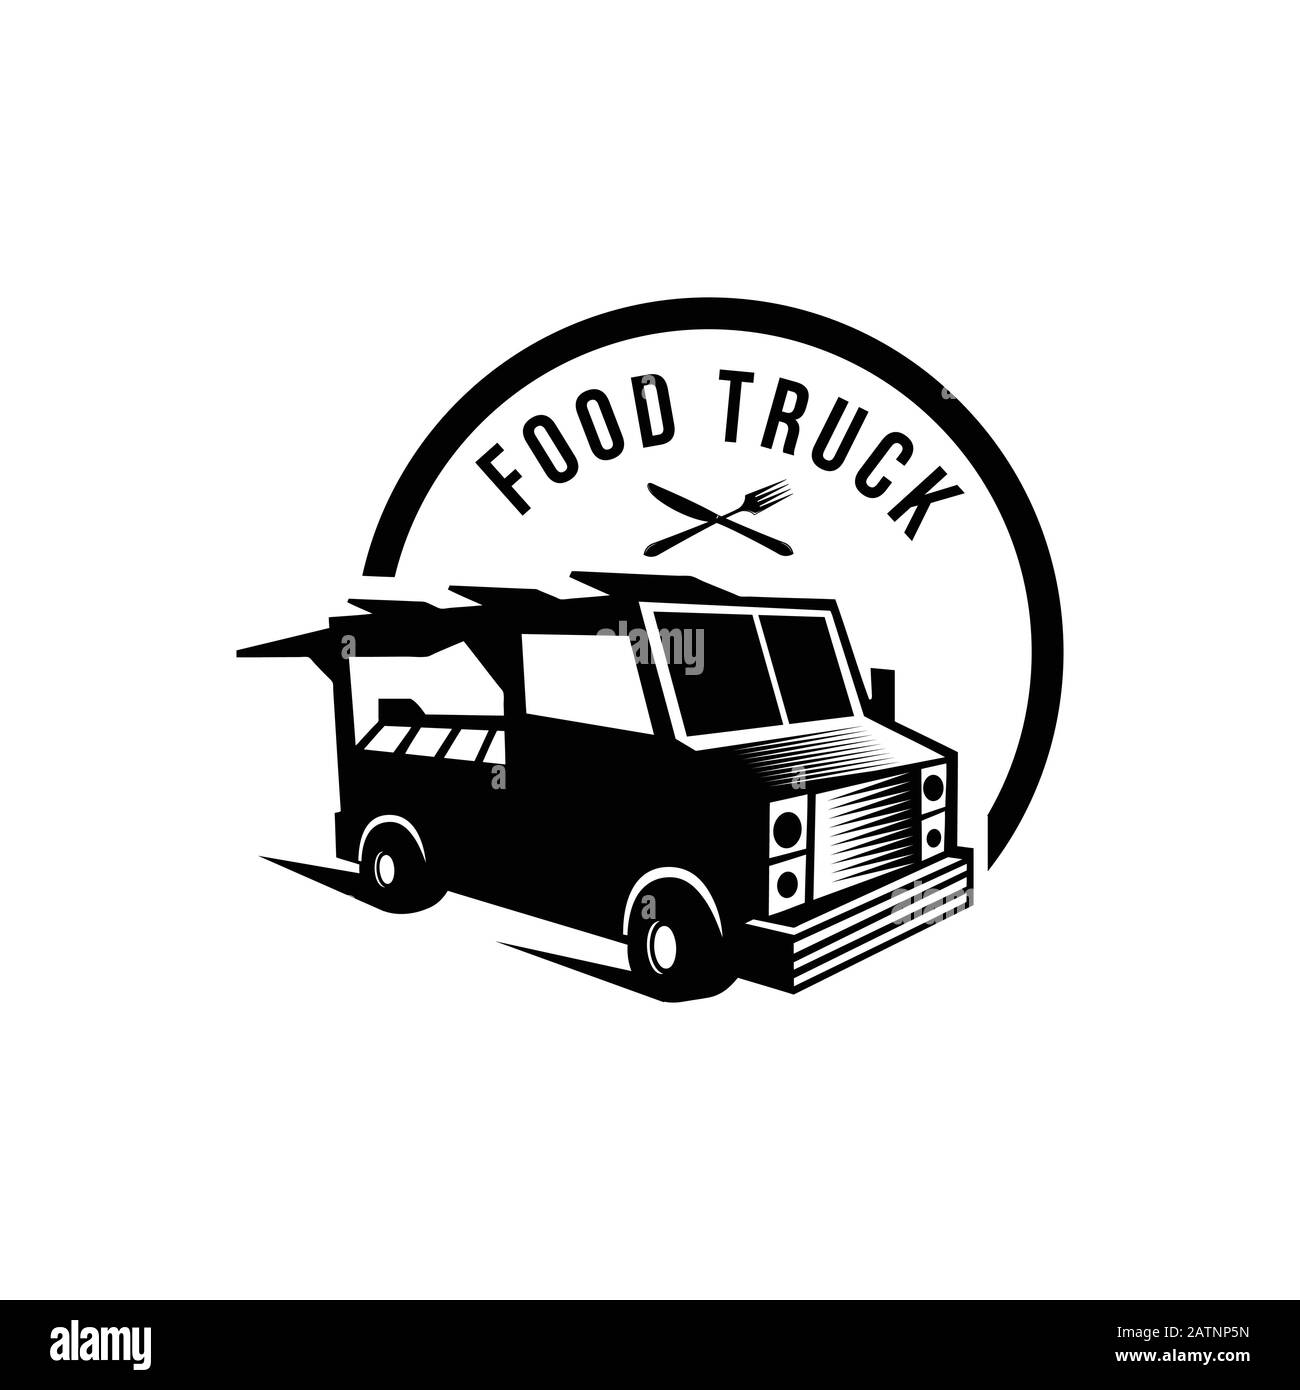 Foodstuffs white background Vintage kitchen print element with fork and knife, text and truck on grunge spot Stock Vector